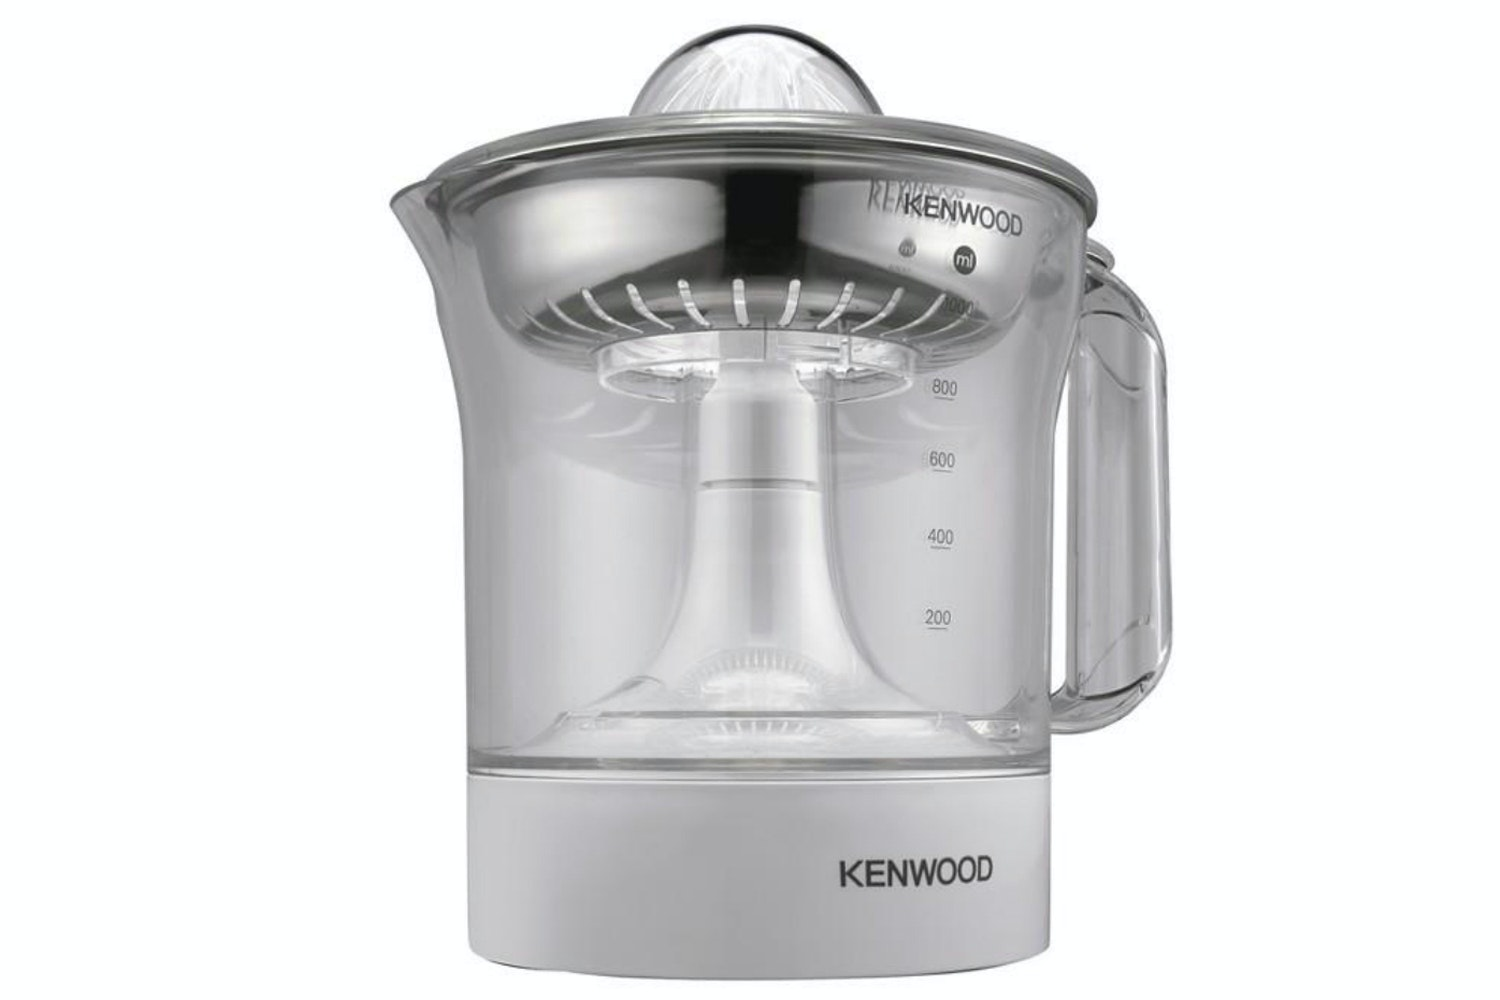 Kenwood Citrus Press Juicer | JE290 | White